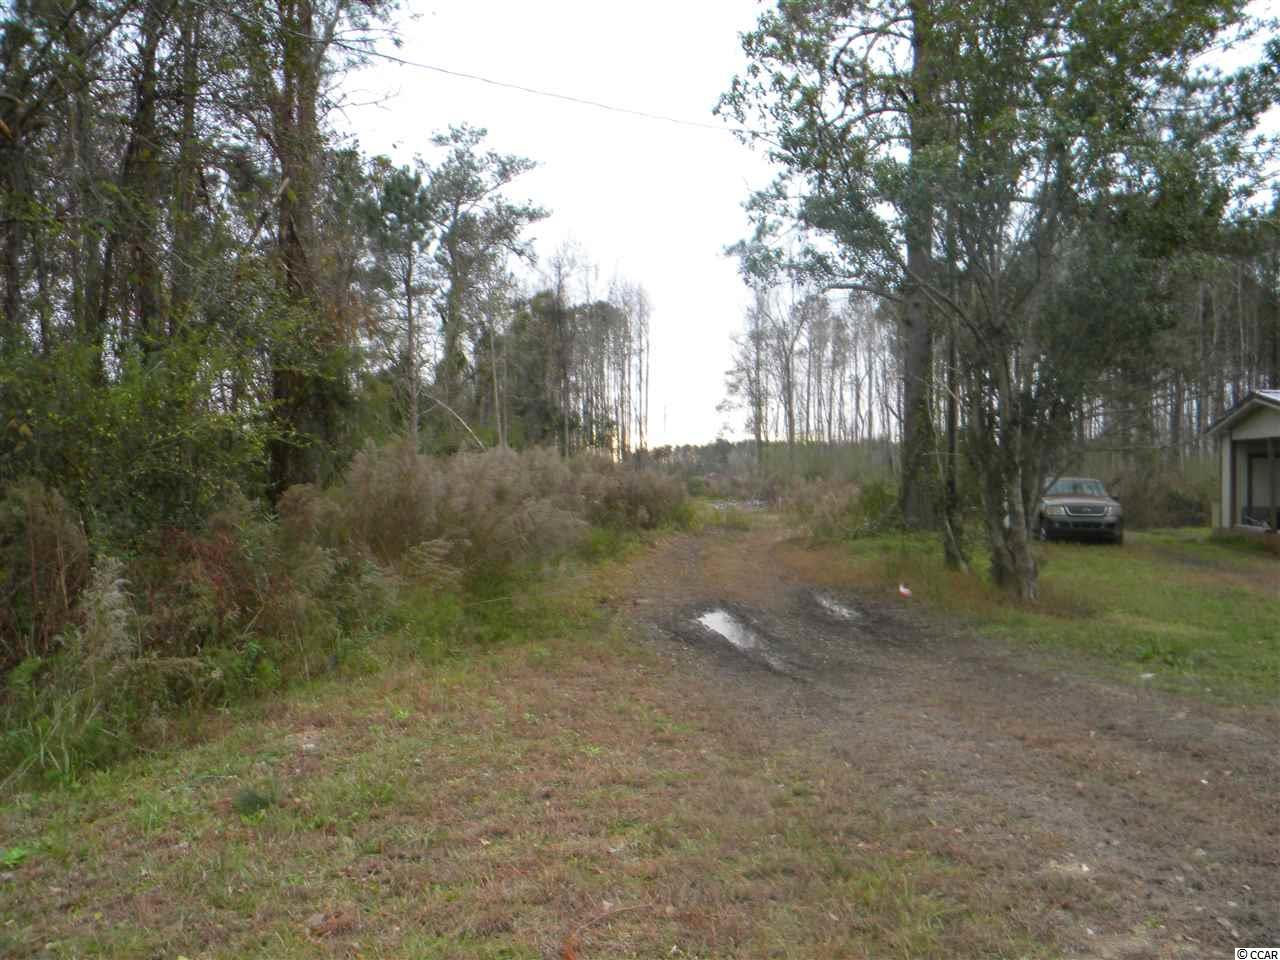 28 +/- acres. Vacant land with countless options for use. LFA zoned, high and dry with easy access to Conway and beaches. Flood Zone X. Public water and electricity are on the road. Buyer should verify all information.